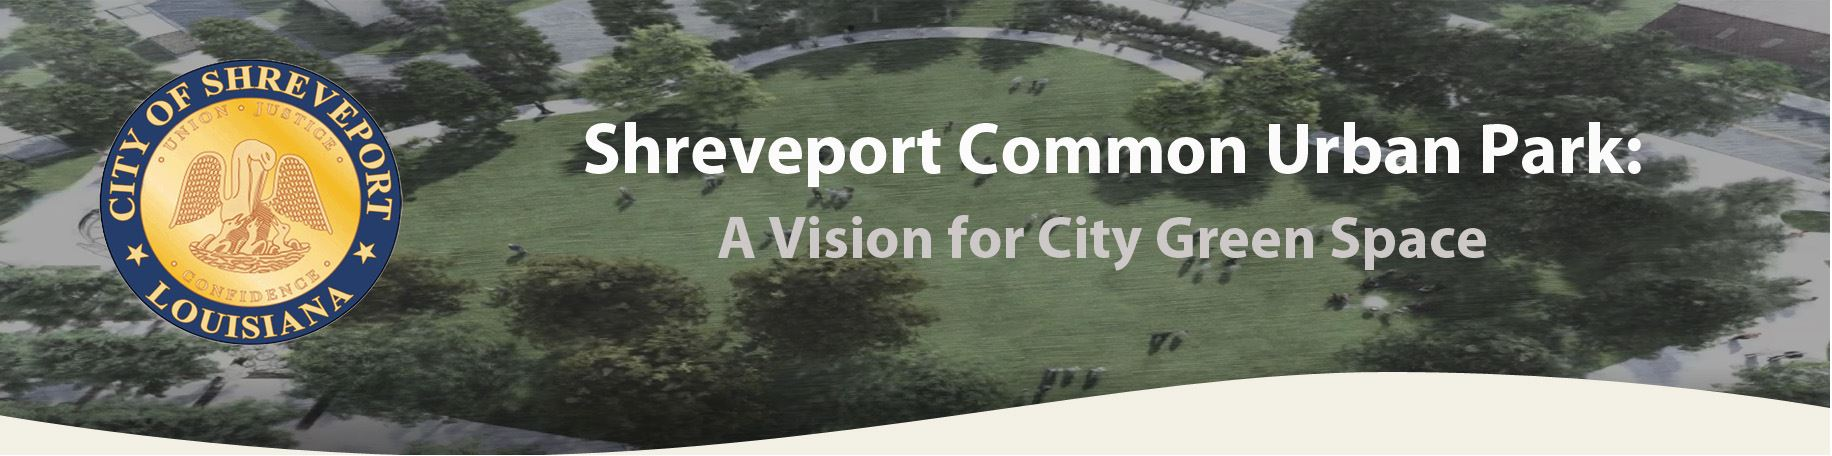 ShreveportCommonUrbanPark